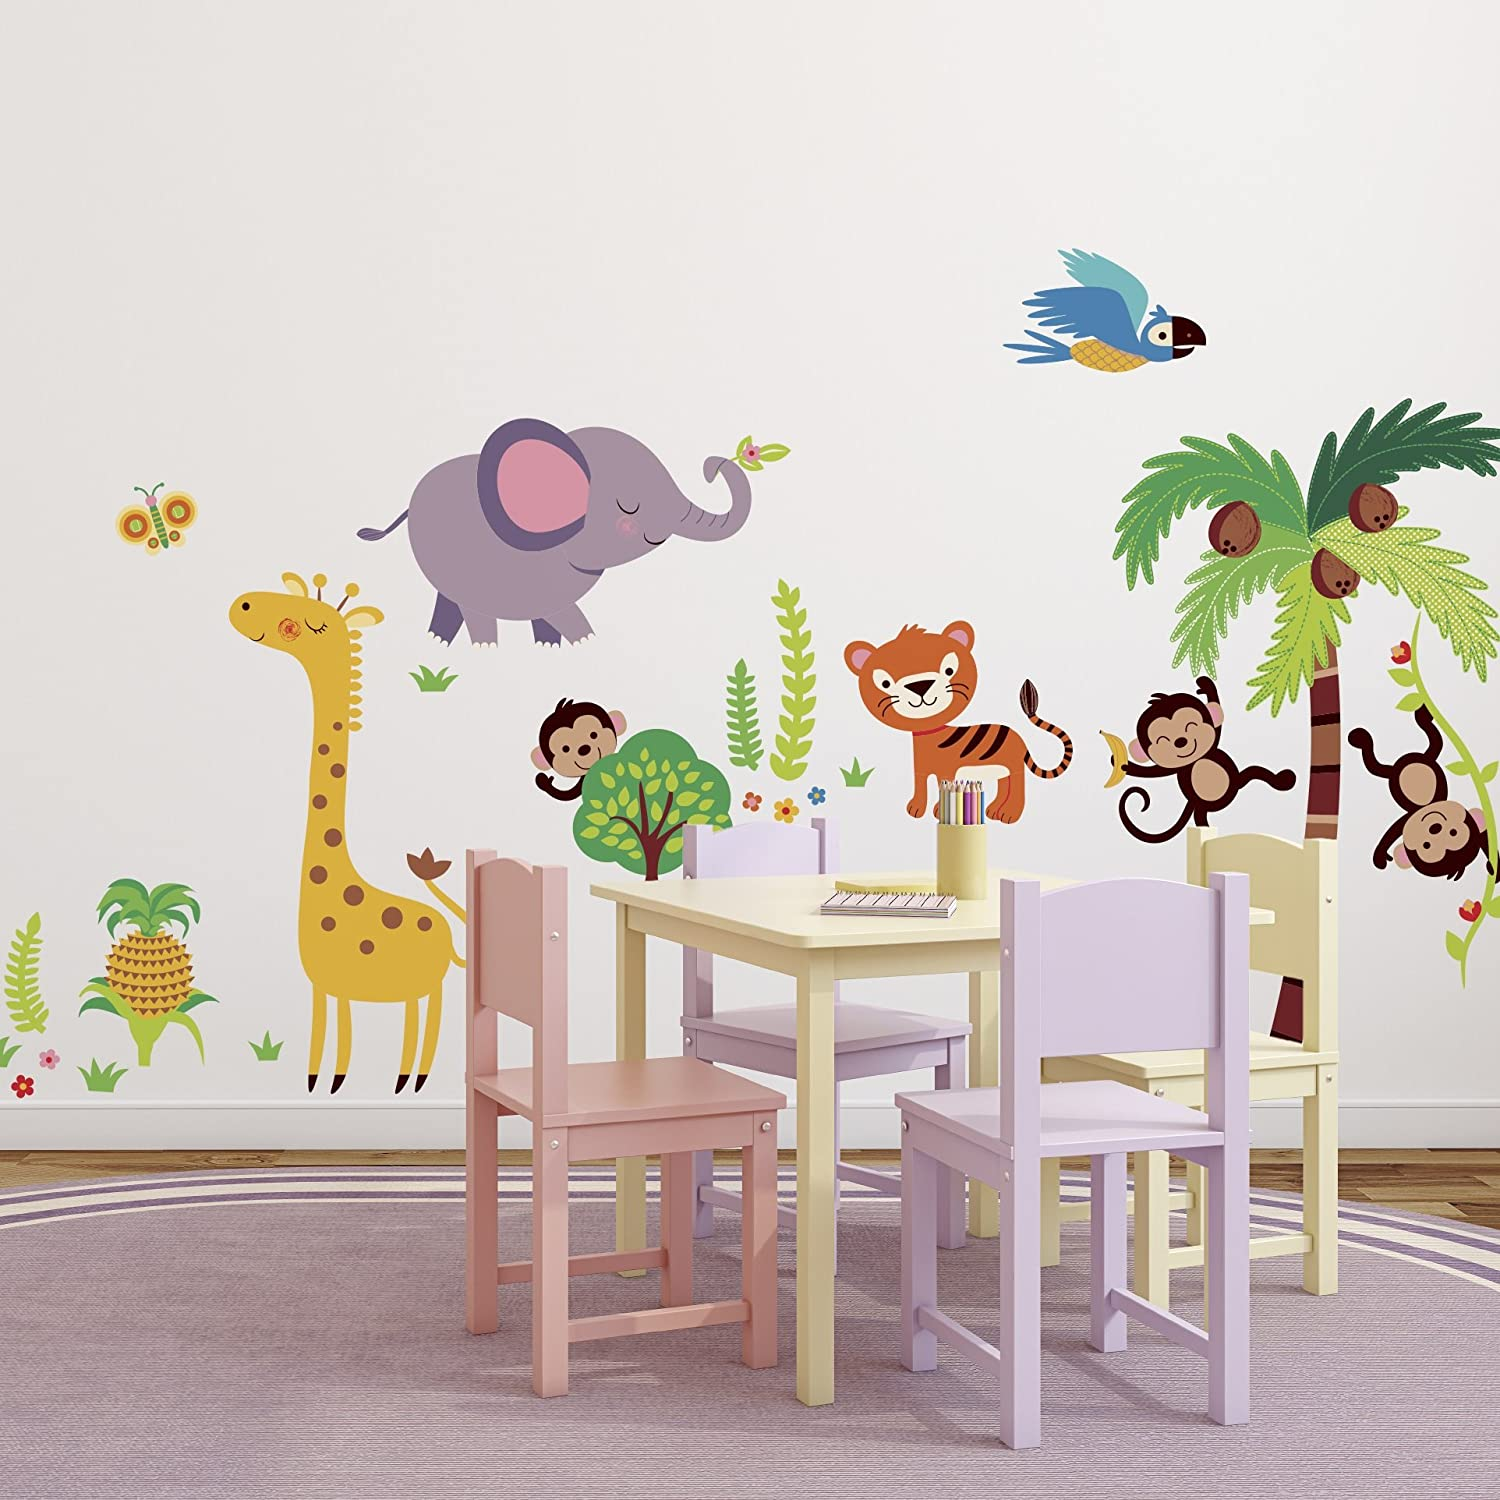 Amazon.com: Giant Nursery/kids Room Wall Sticker Decals   Tumble In The  Jungle Monkeys Stickers: Home Improvement